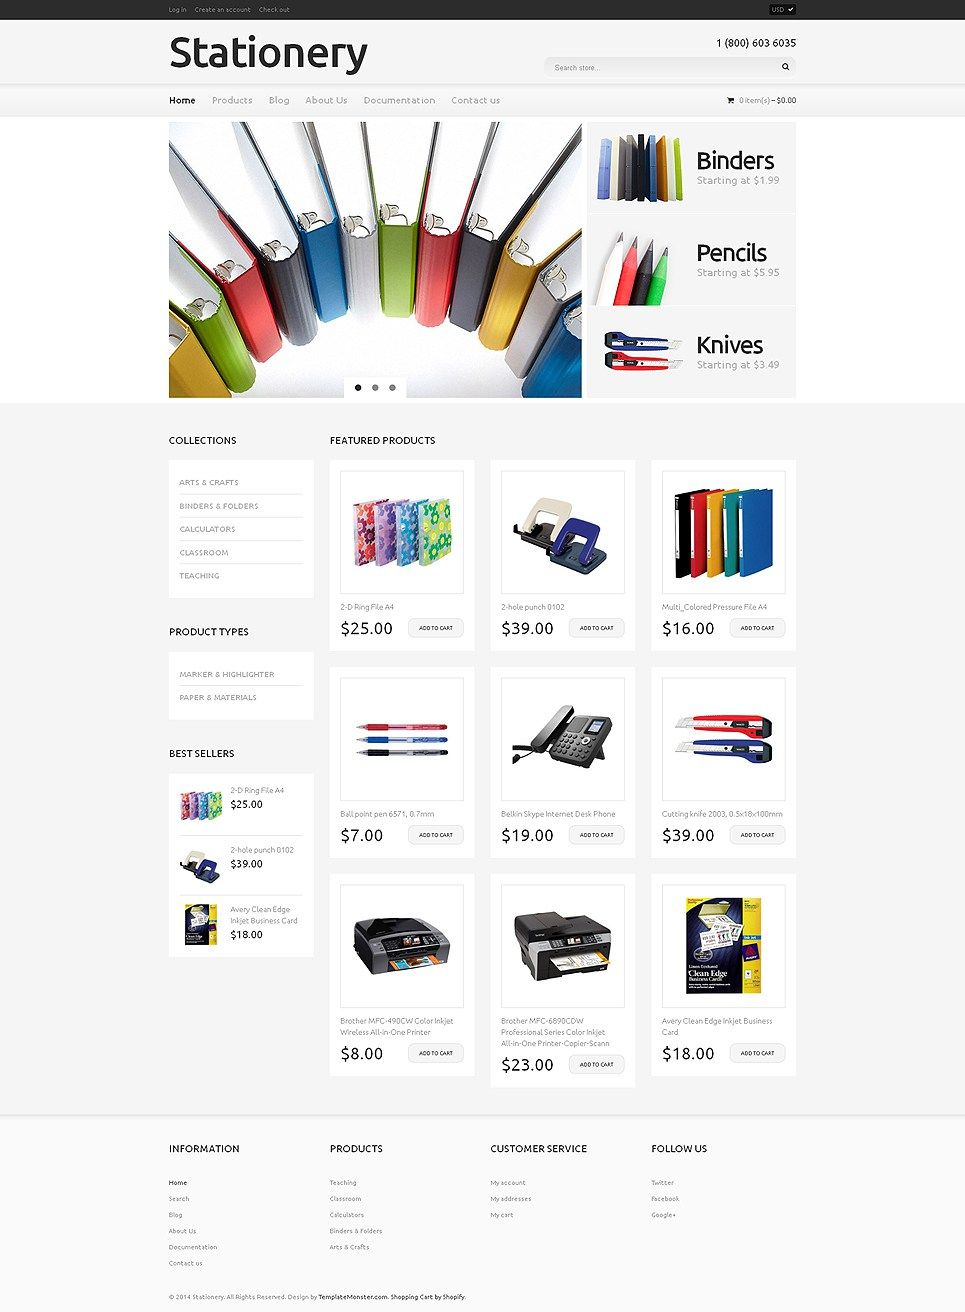 Get Creative With These Awesome Art Supplies Stationery Store Shopify Themes Buildify Shopify Templates Shopify Theme Ecommerce Template